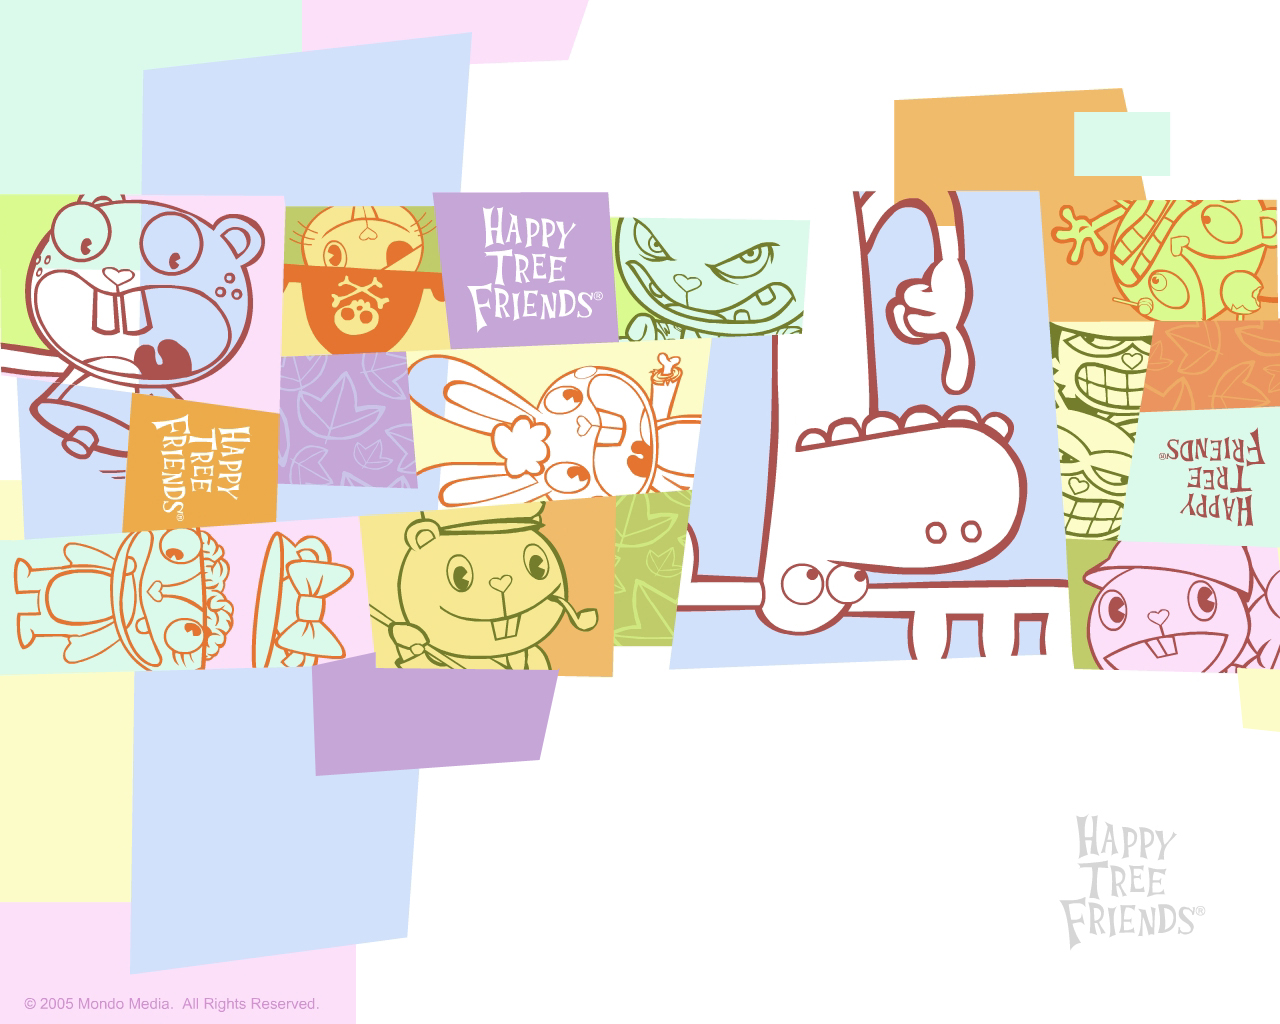 Happy Tree Friends Images Happy Tree Friends Hd Wallpaper And